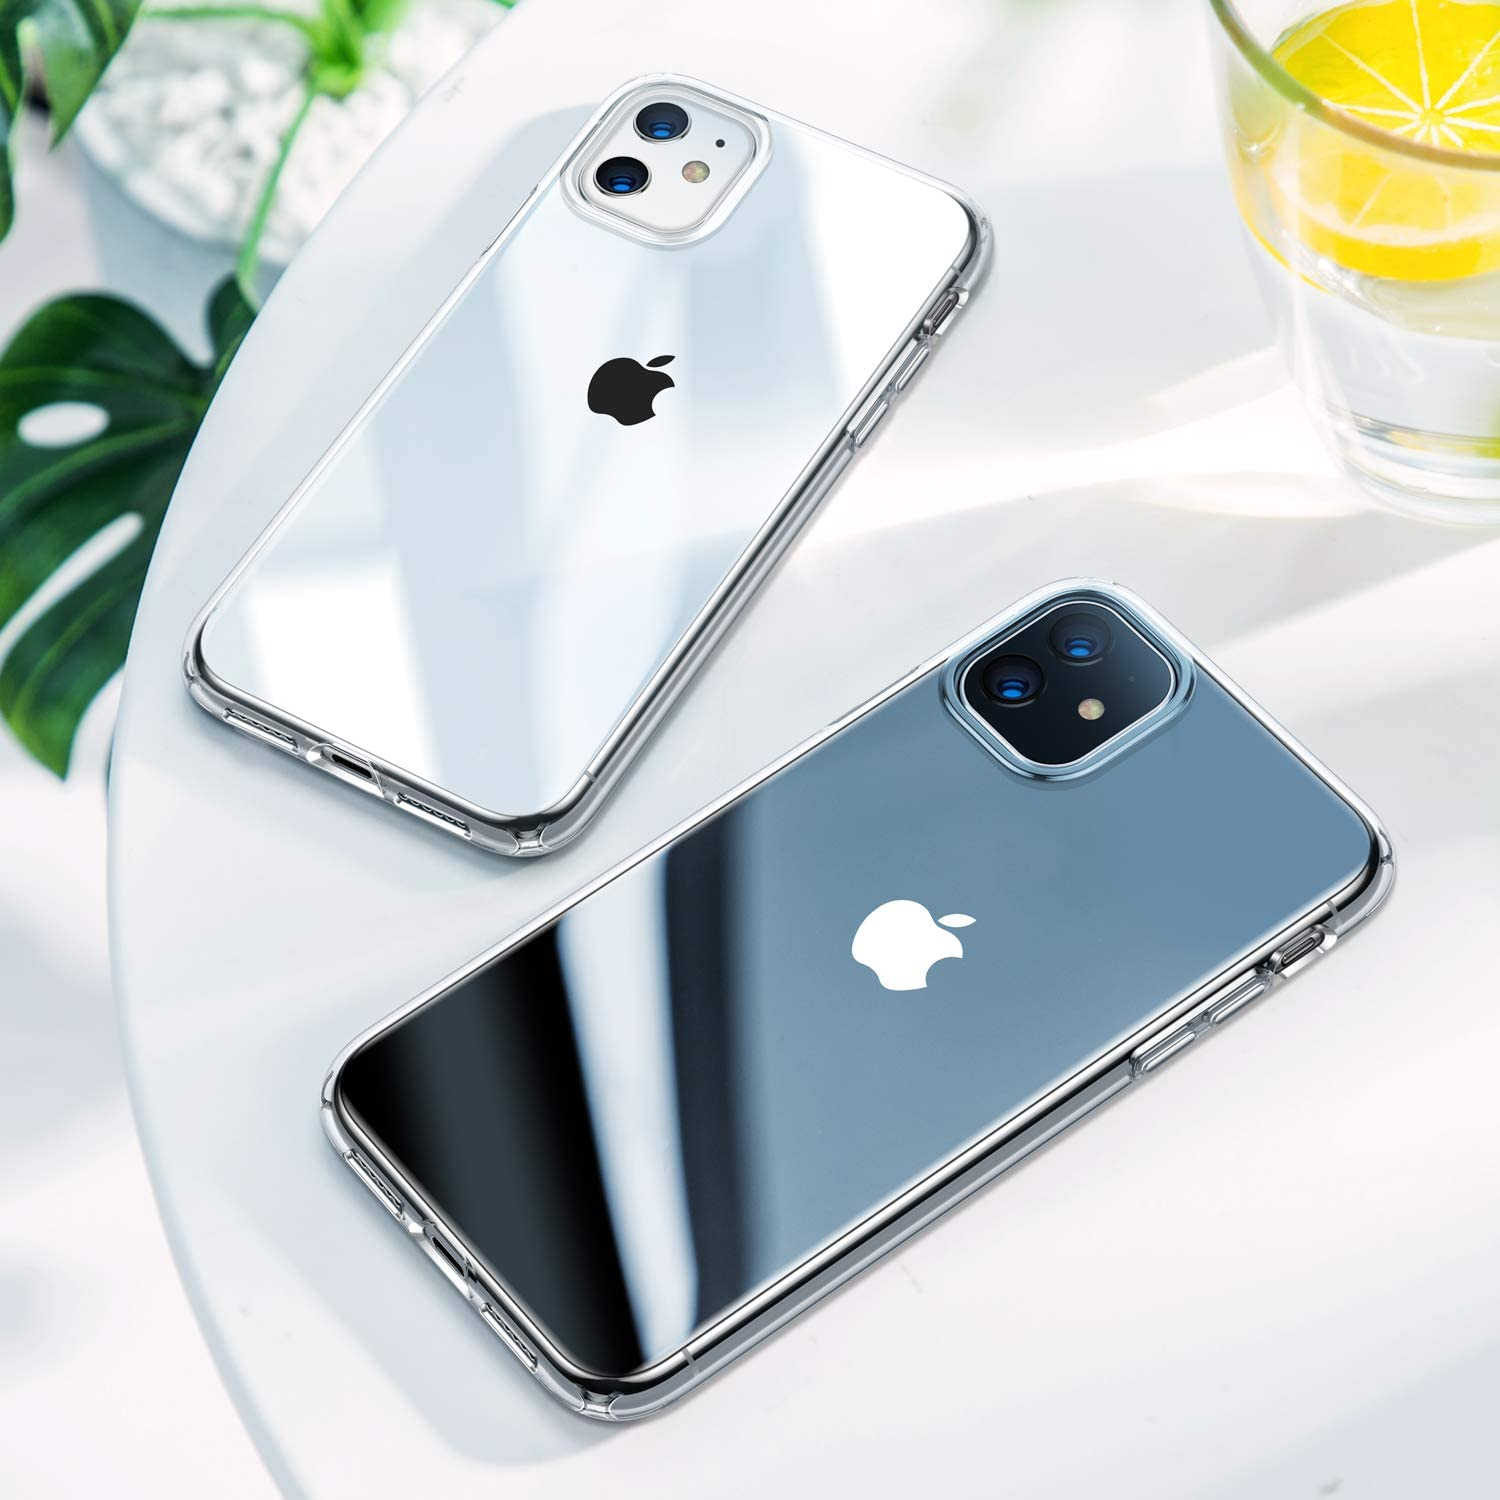 For iPhone XR 11 SE 2020 Case Crystal Clear Phone Case for iPhone SE 8 7 6s 6 5s 11 Pro Max Xs Max Case TPU Shockproof Cover